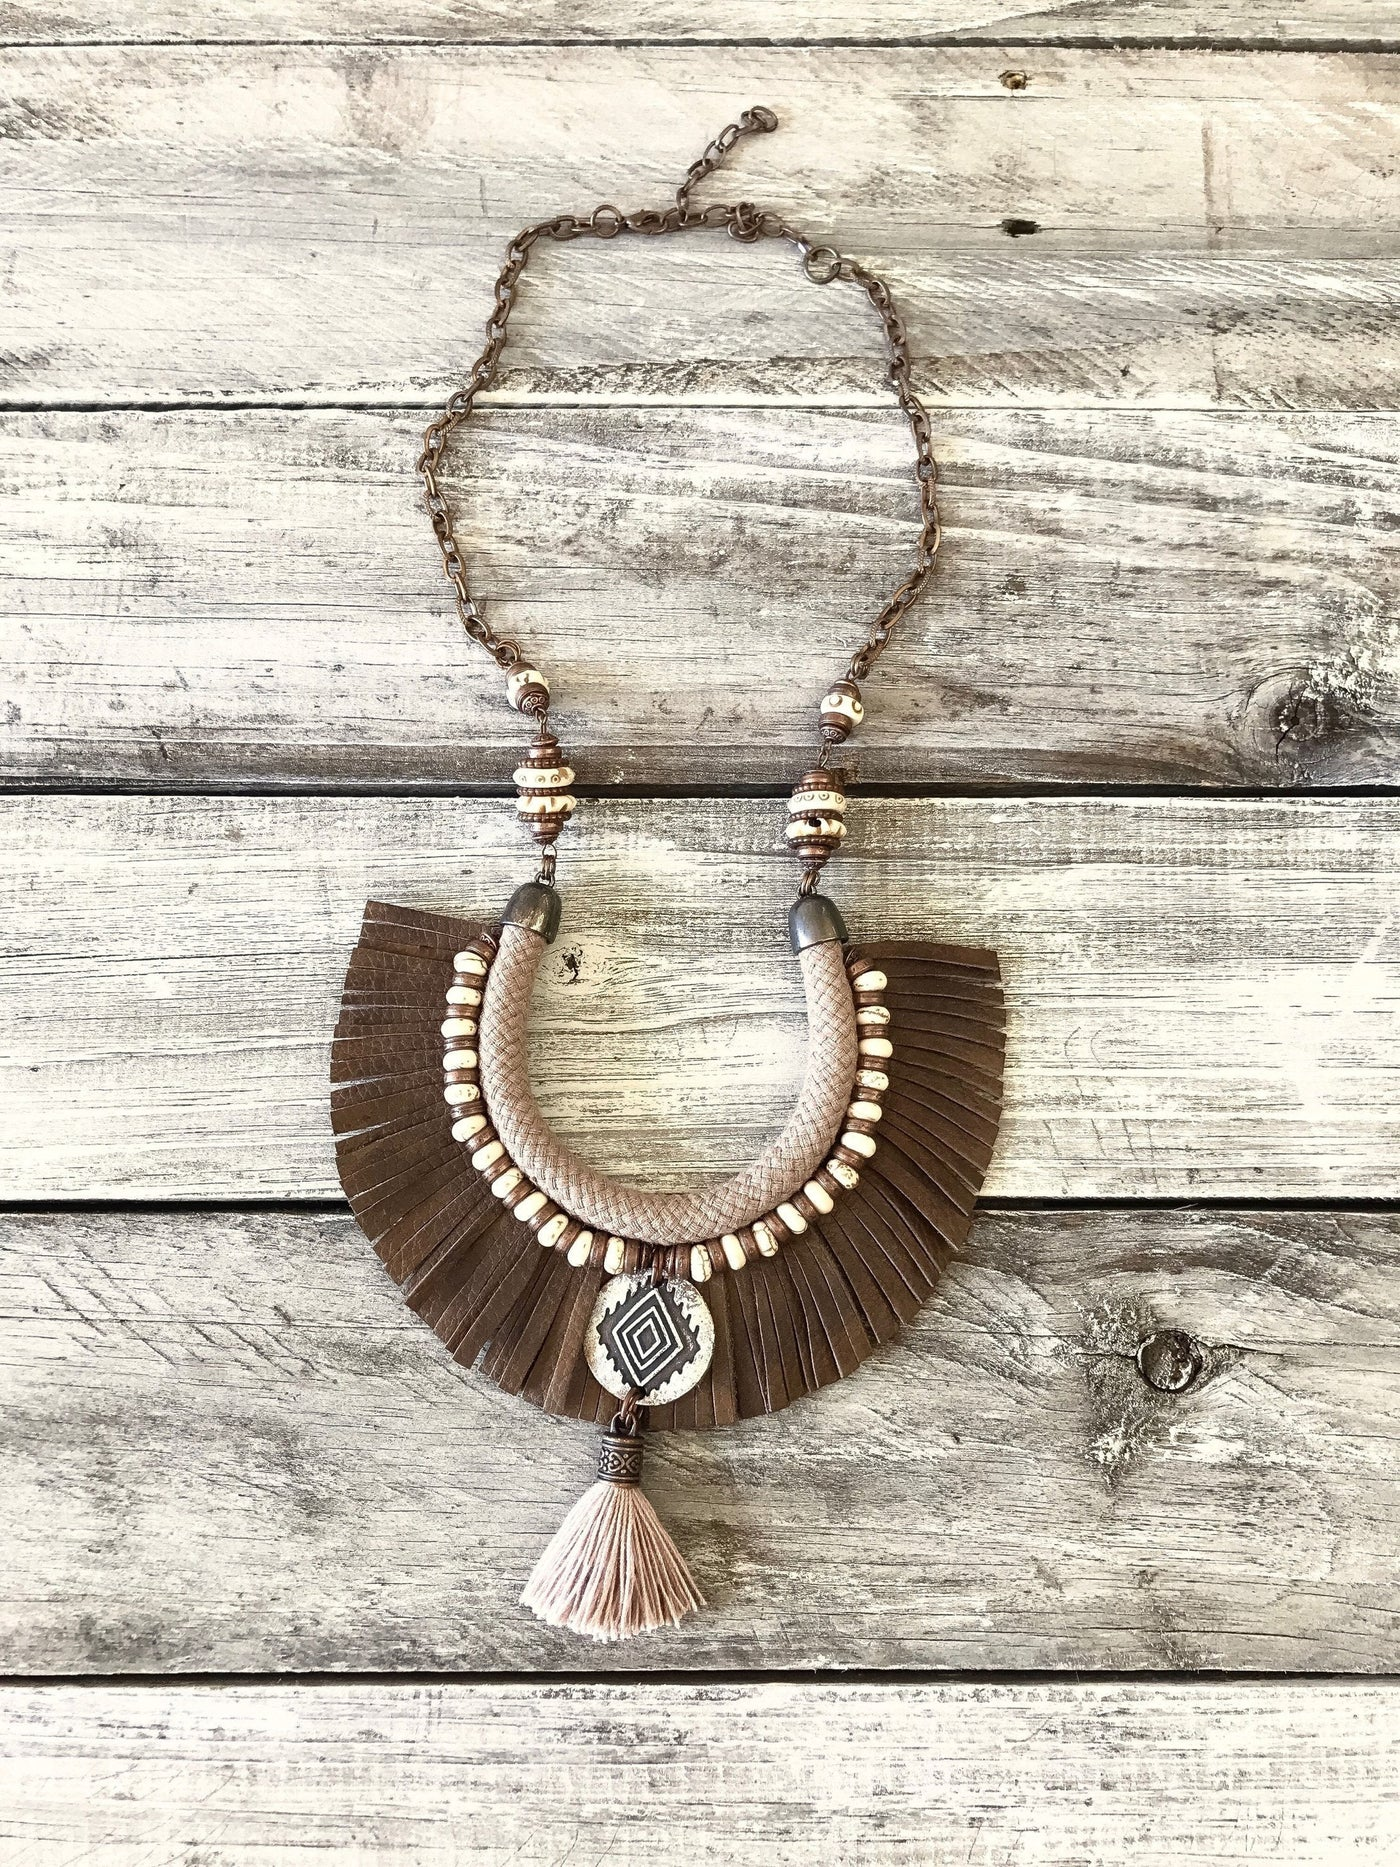 Boho Tribal Leather Fringe Ethnic Statement Necklace